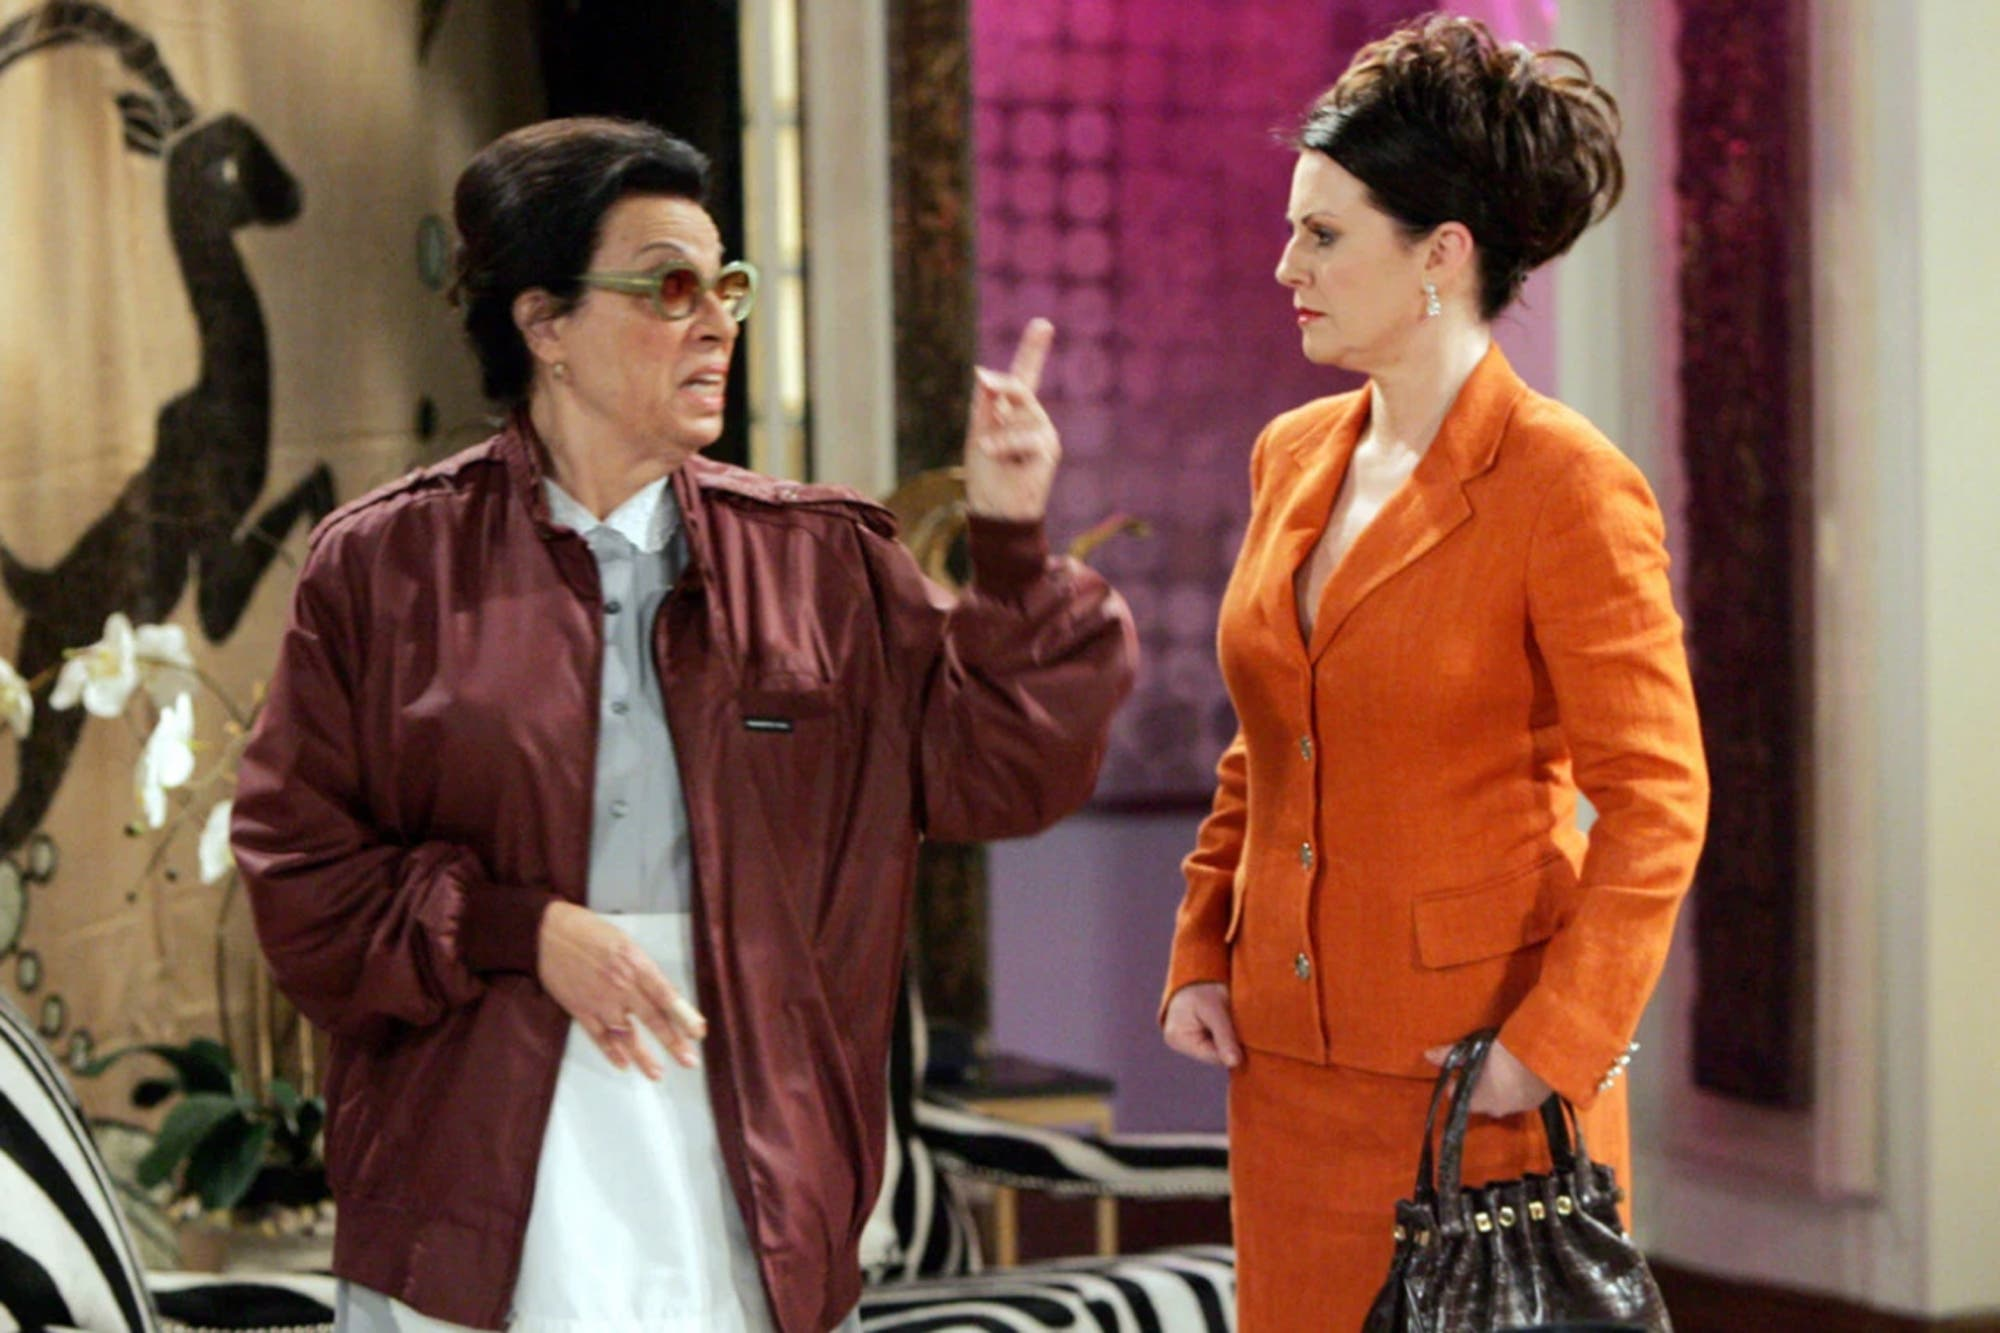 Murió la actriz Shelley Morrison, de Will & Grace